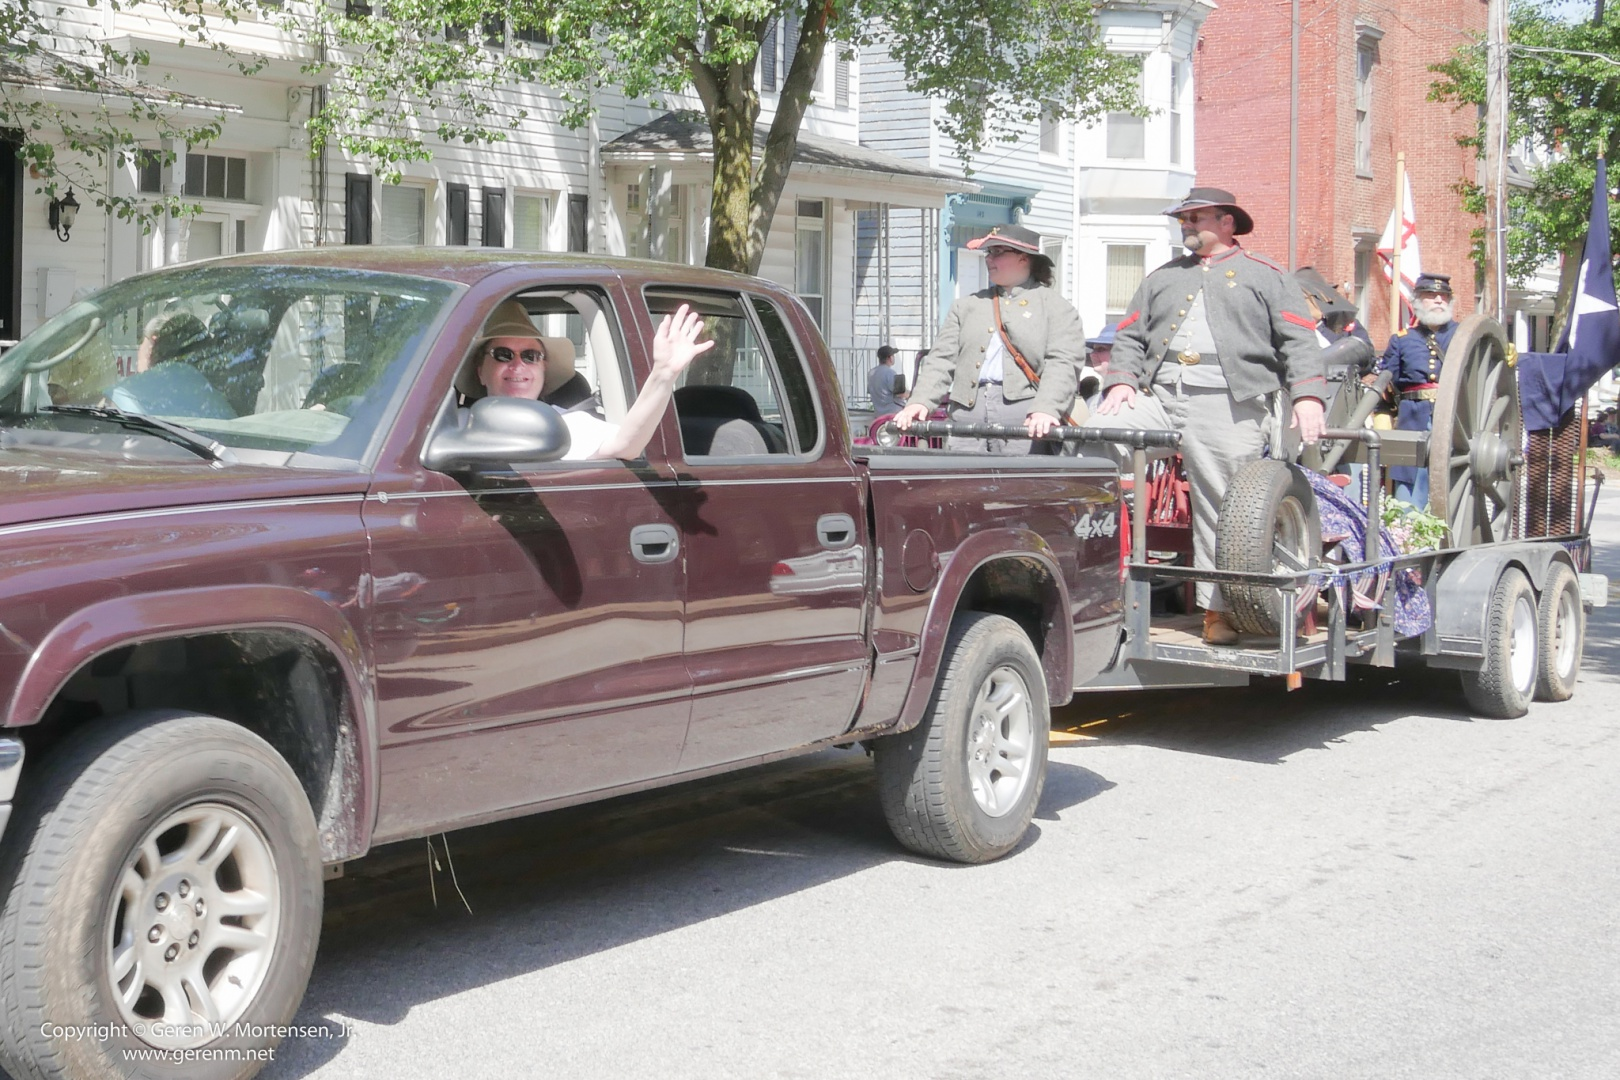 Memorial-Day-Parade_May-26-2014_03_PANA.jpg